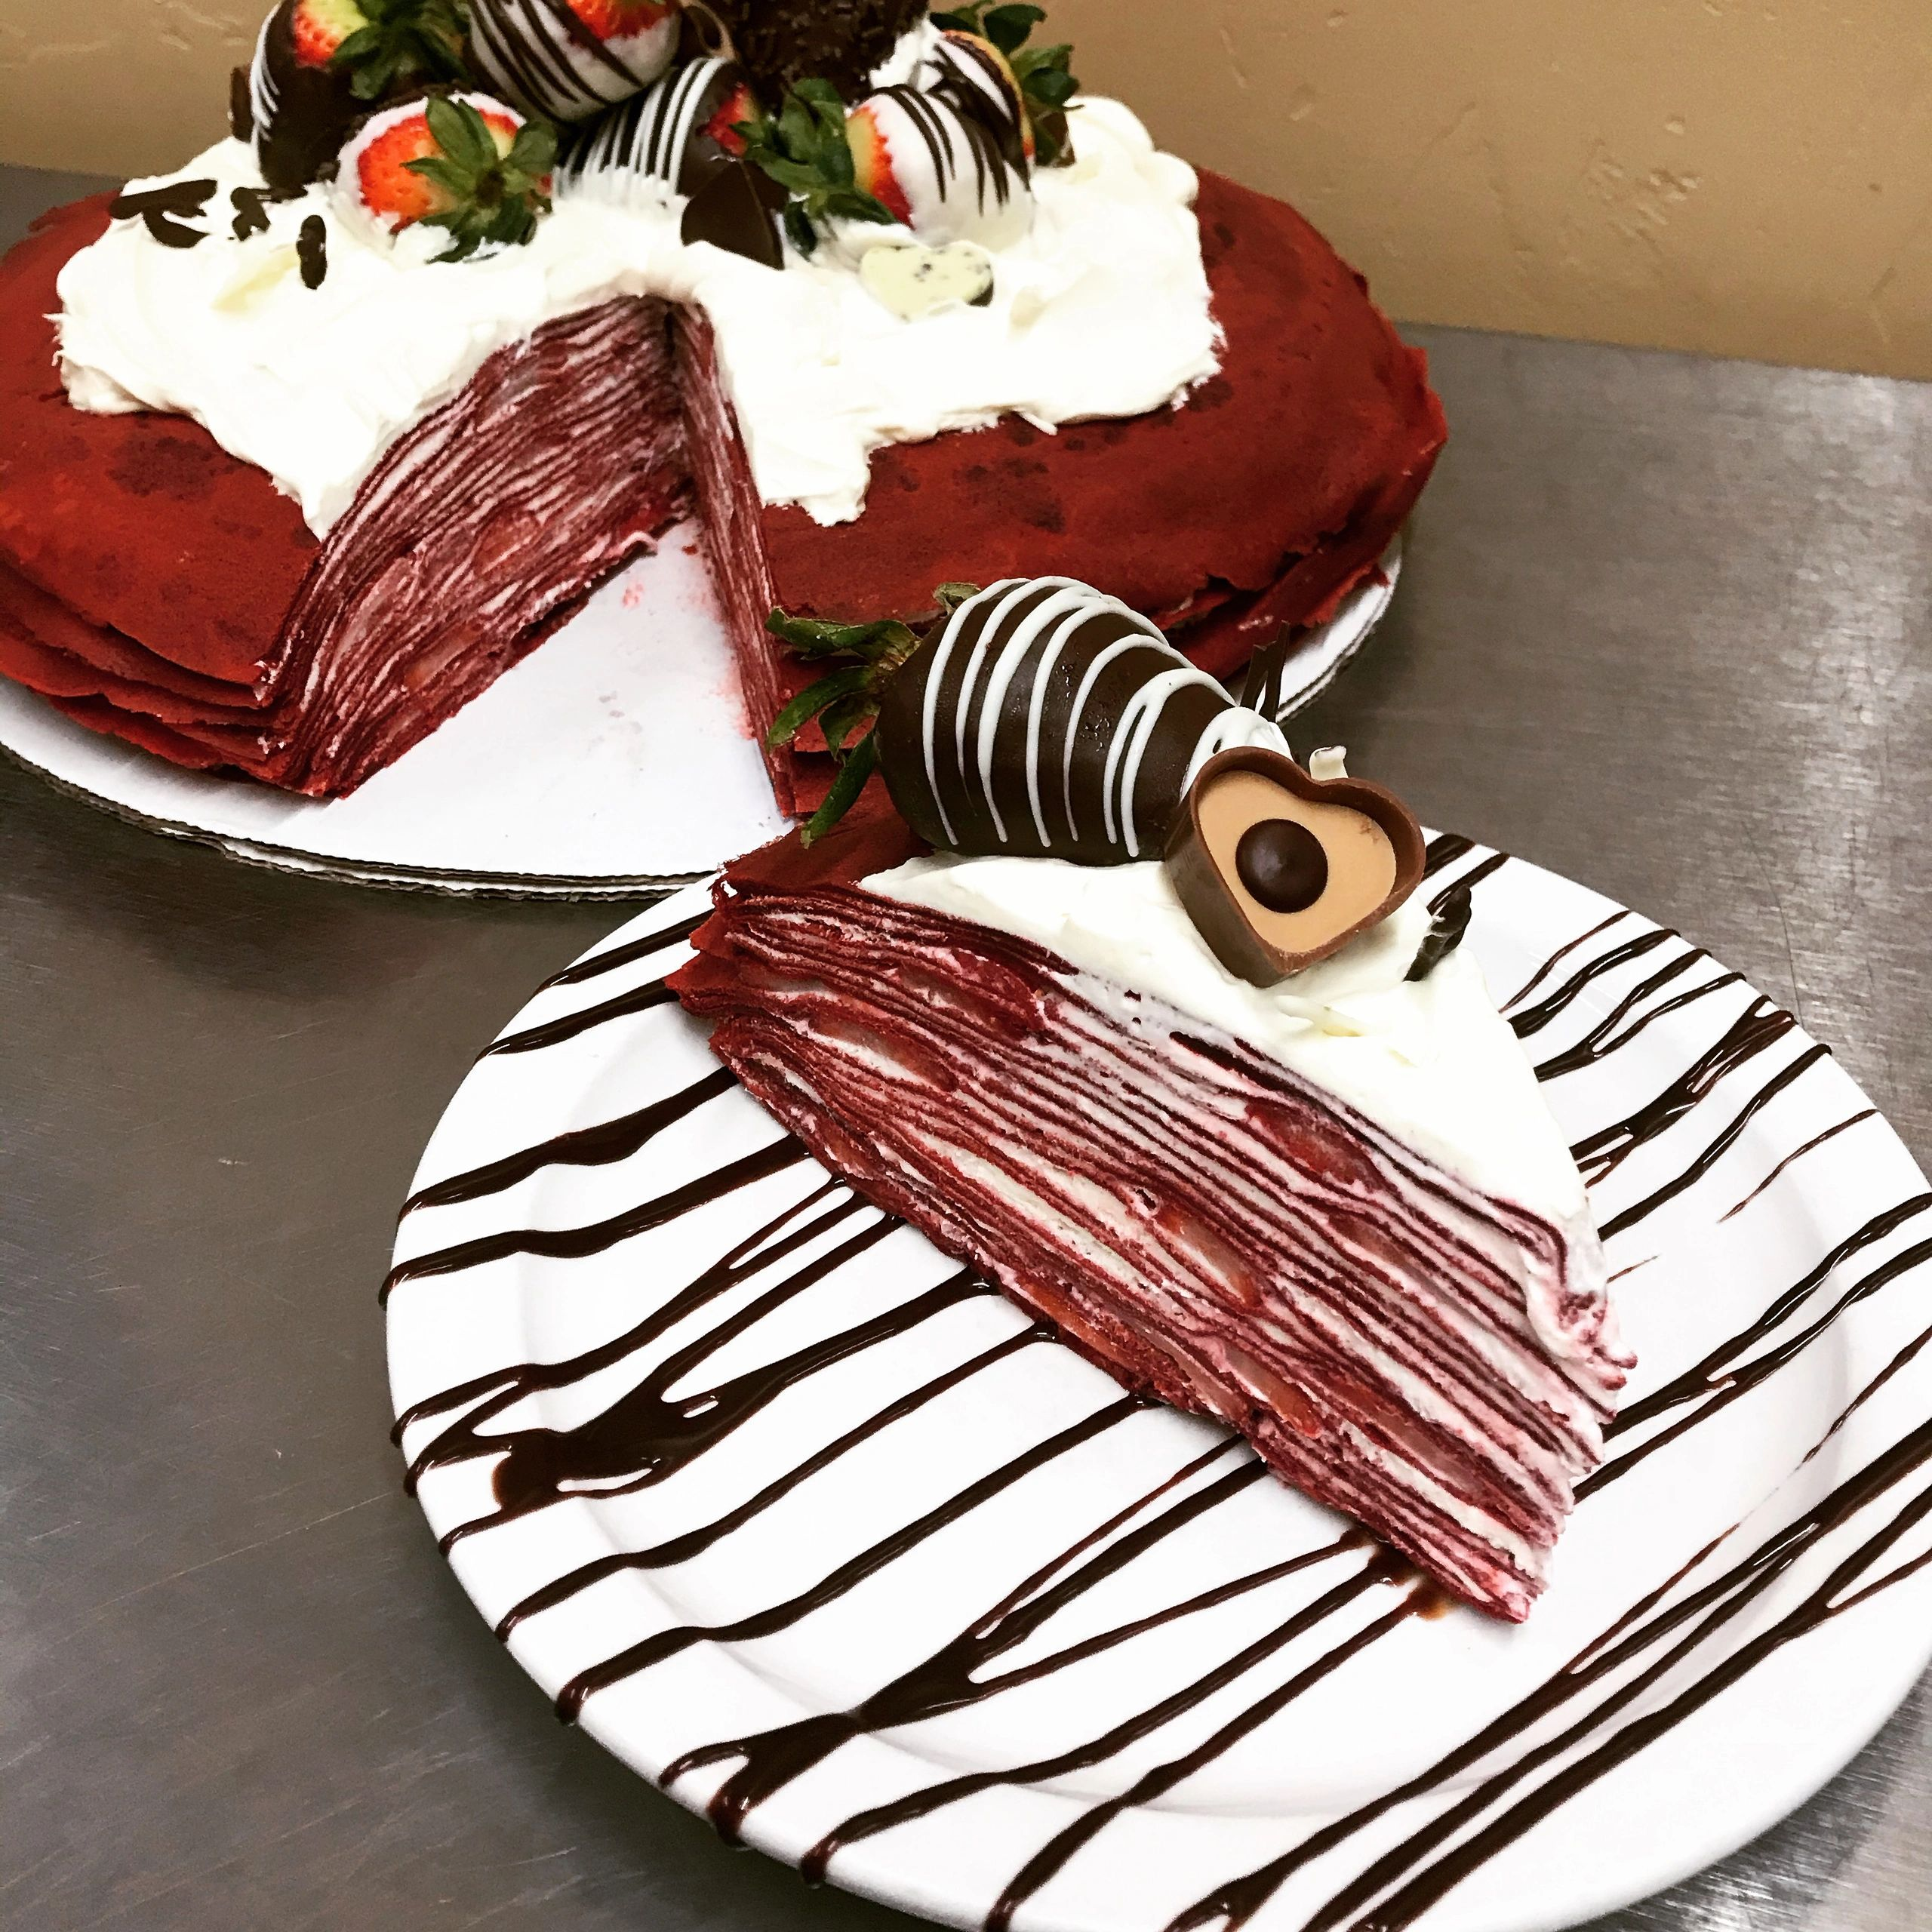 Slice of red velvet crepe cake with 20 layers of paper thin crepes